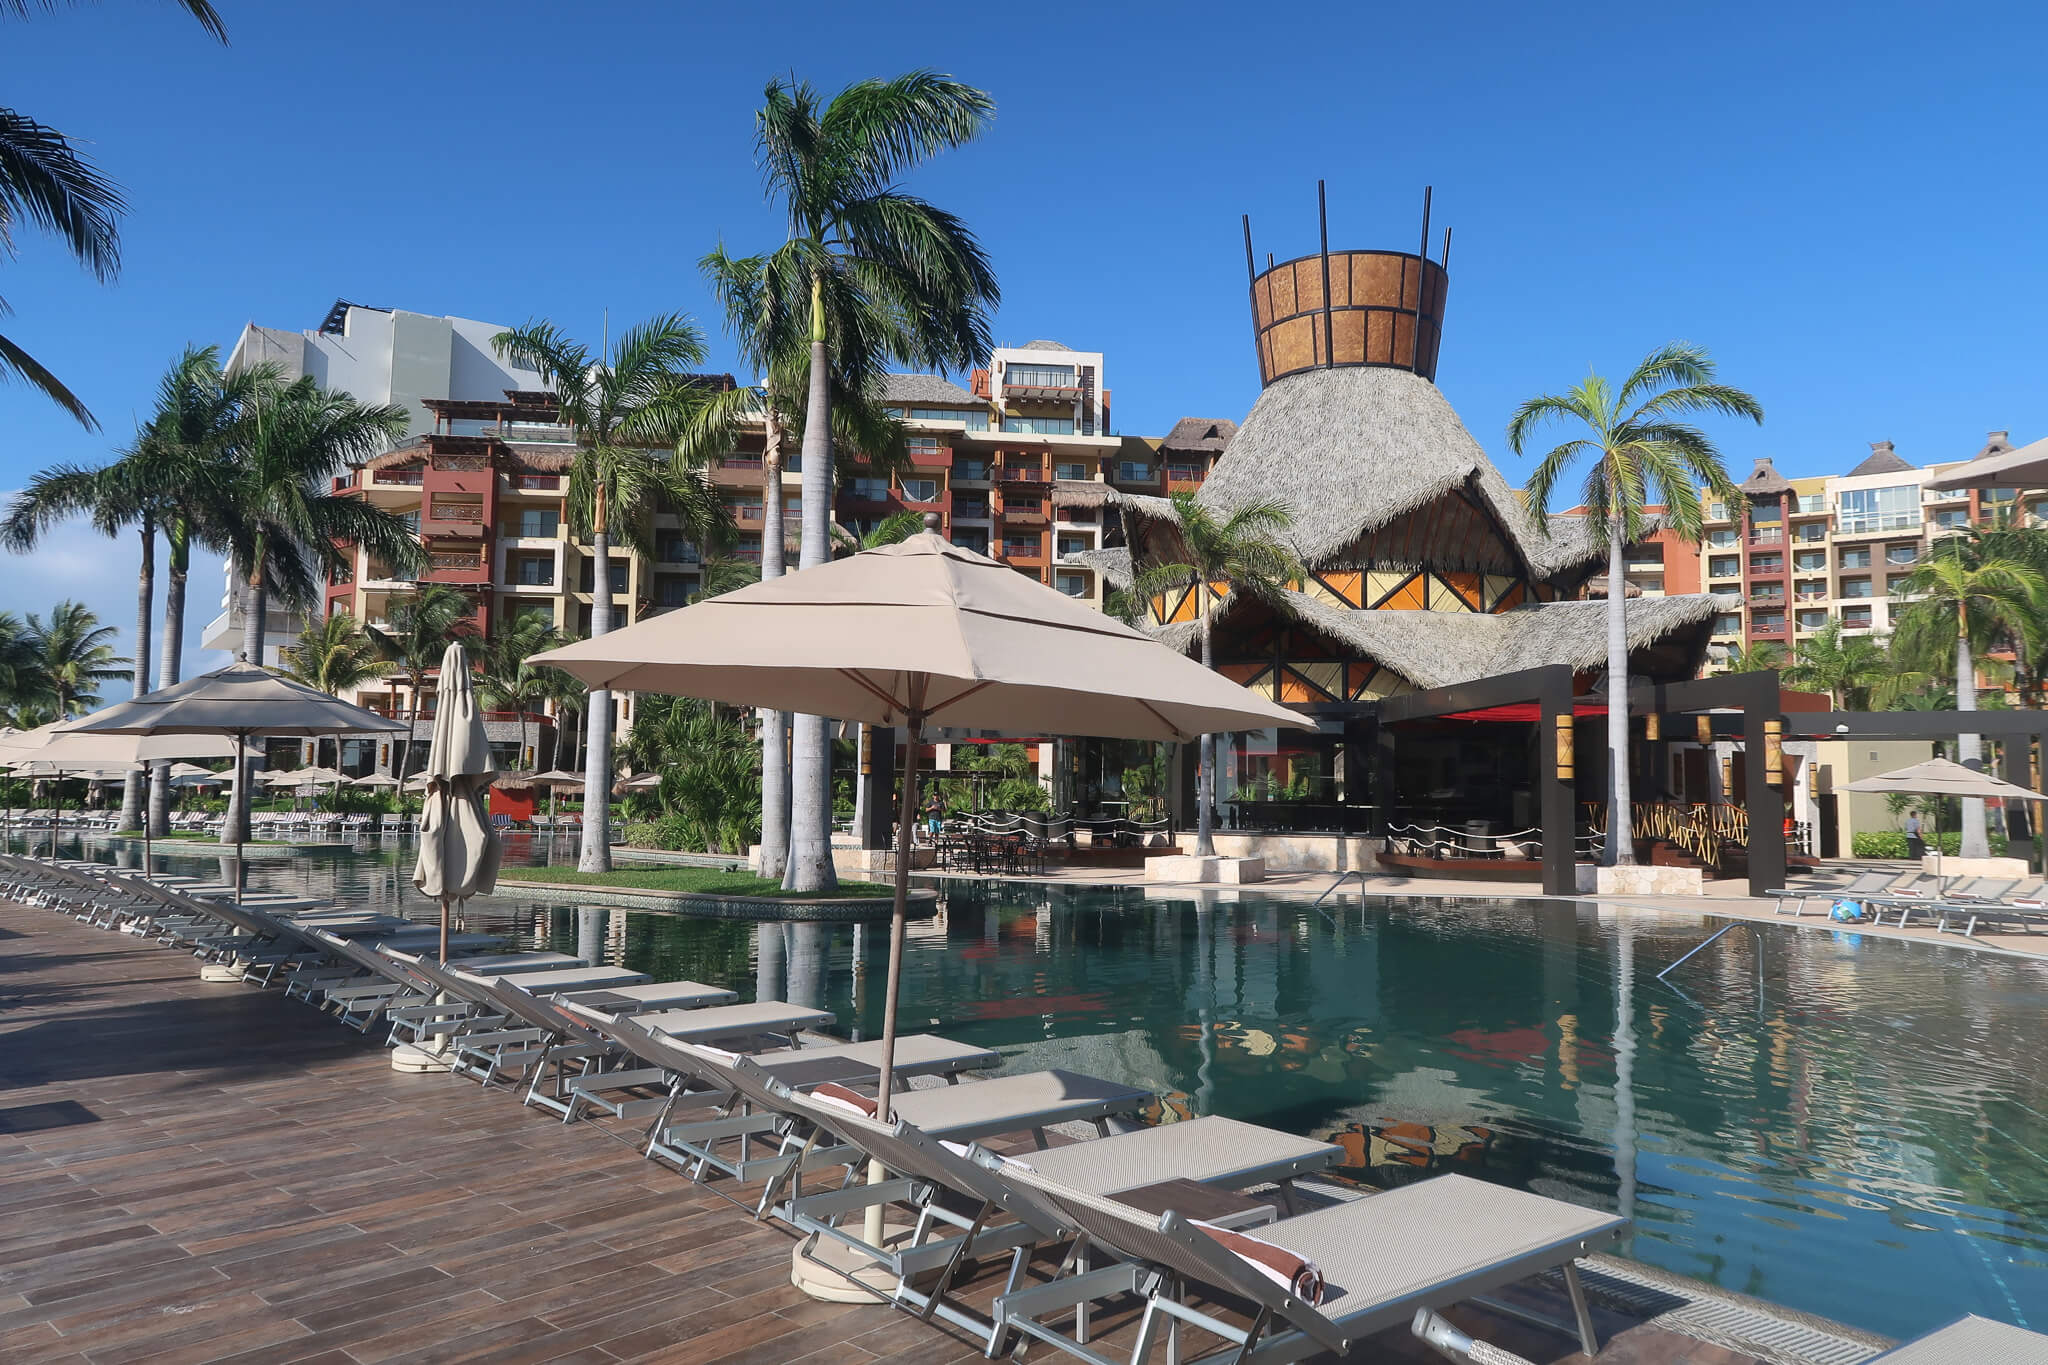 The main pool at the Villa del Palmar Cancun is where we spent most of our time while there.